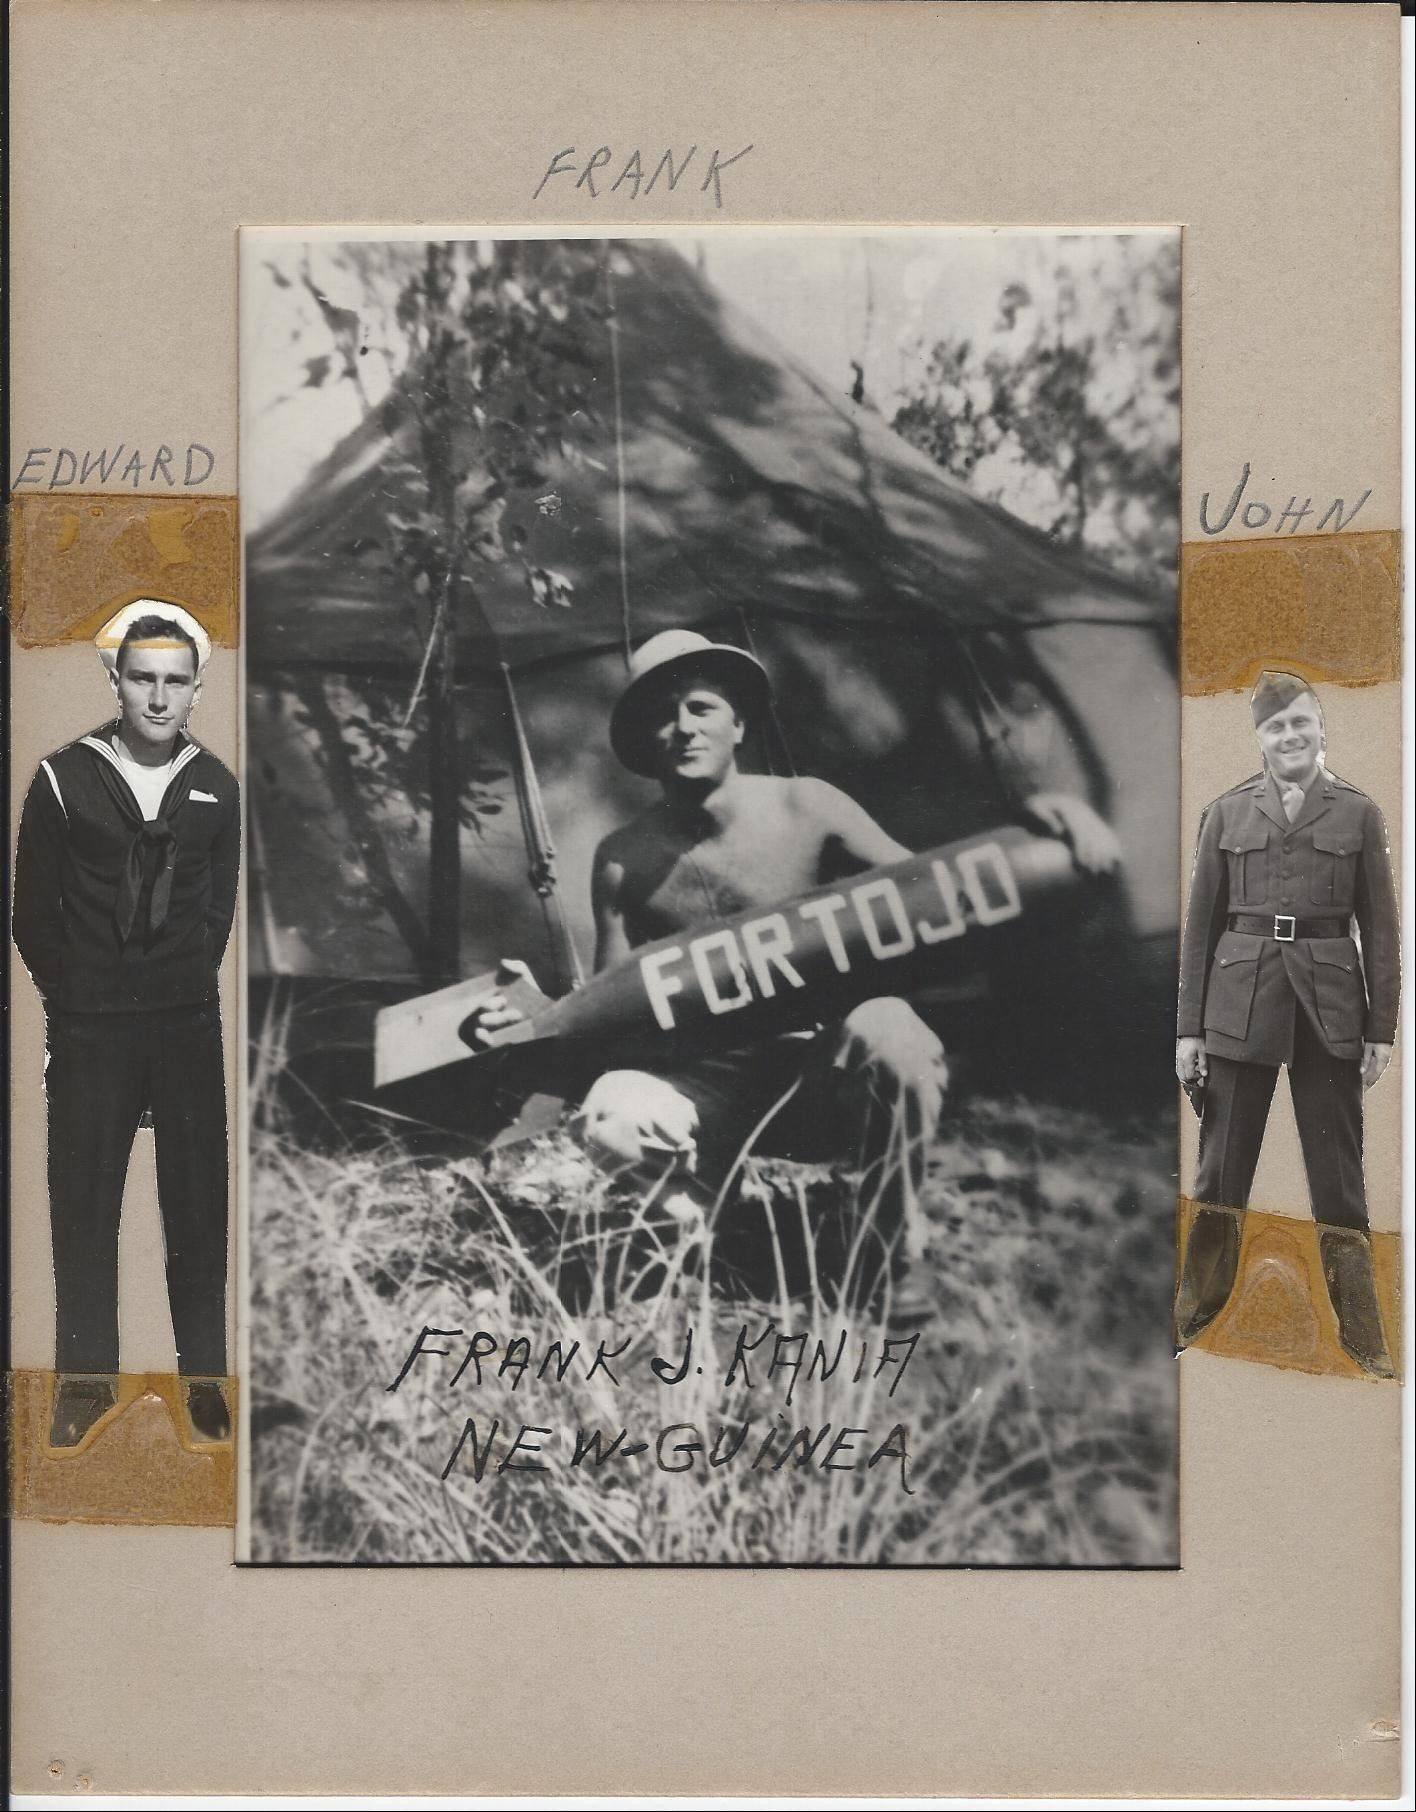 Frank Kania holds a bomb referring to the Japanese general in the middle photo, flanked by photos of his brothers Edward and Johnny during their service in World War II..